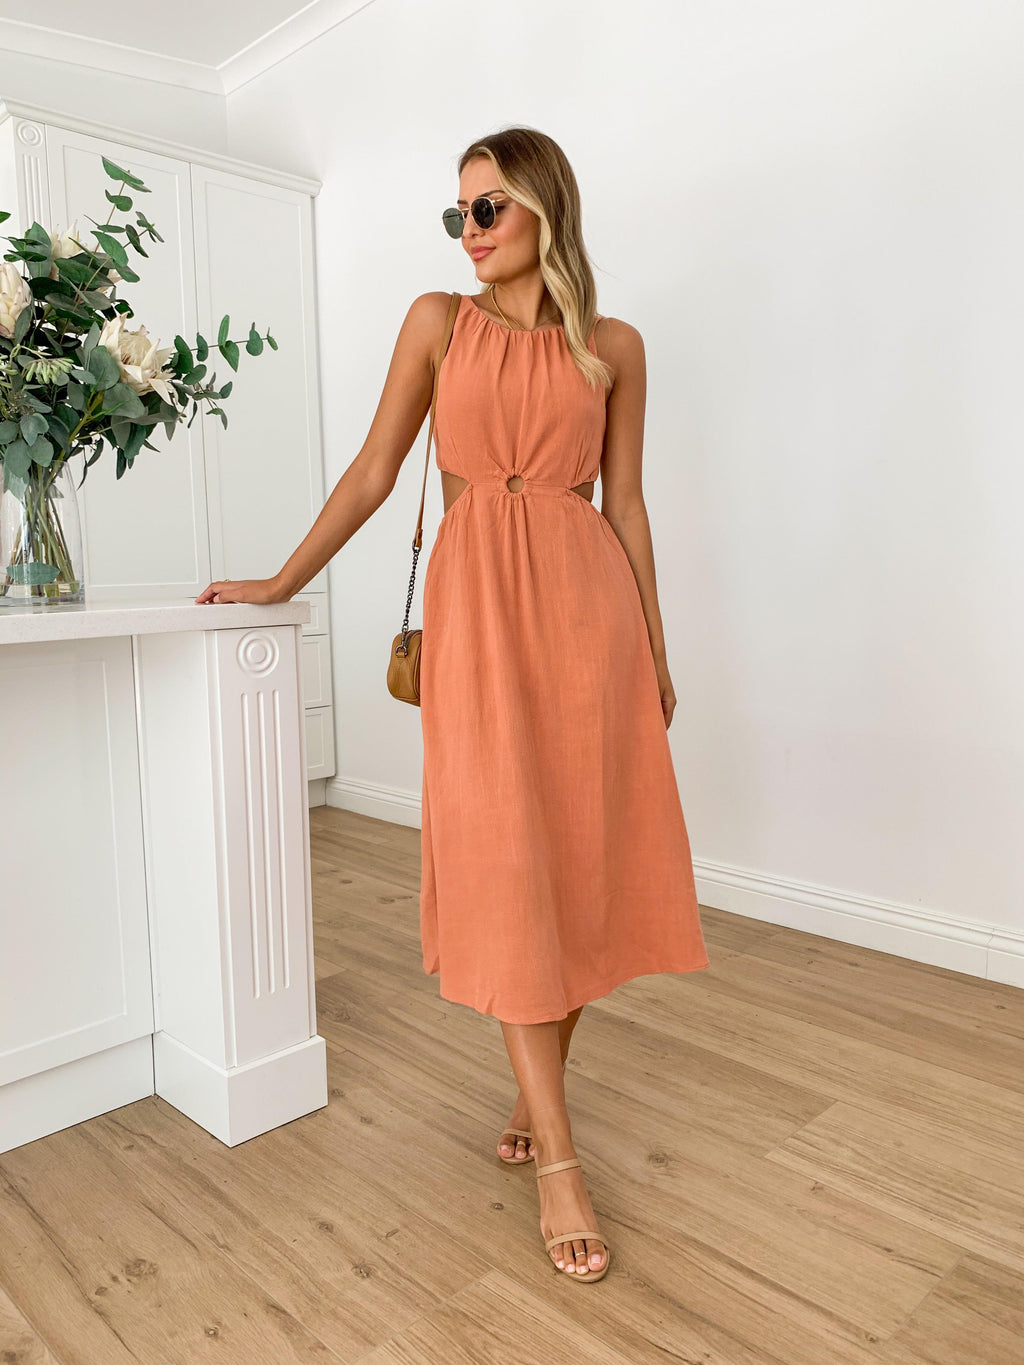 Peaceful Bay Dress